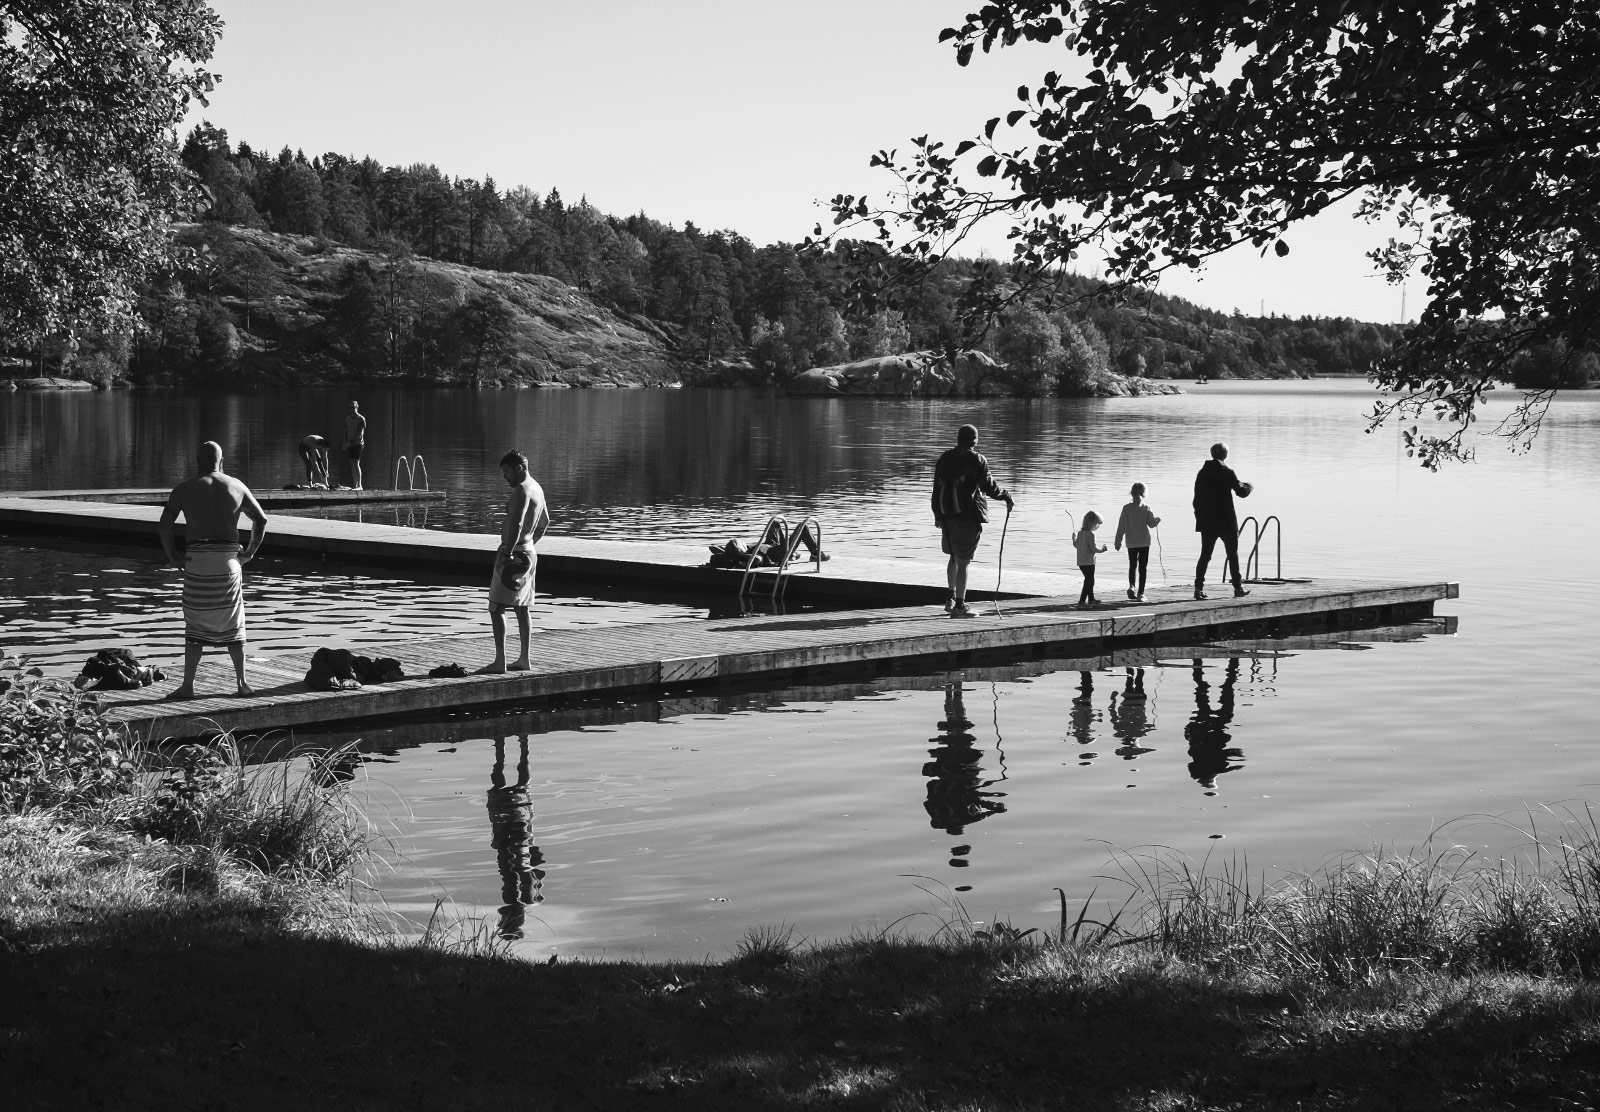 Swimmers on jetty